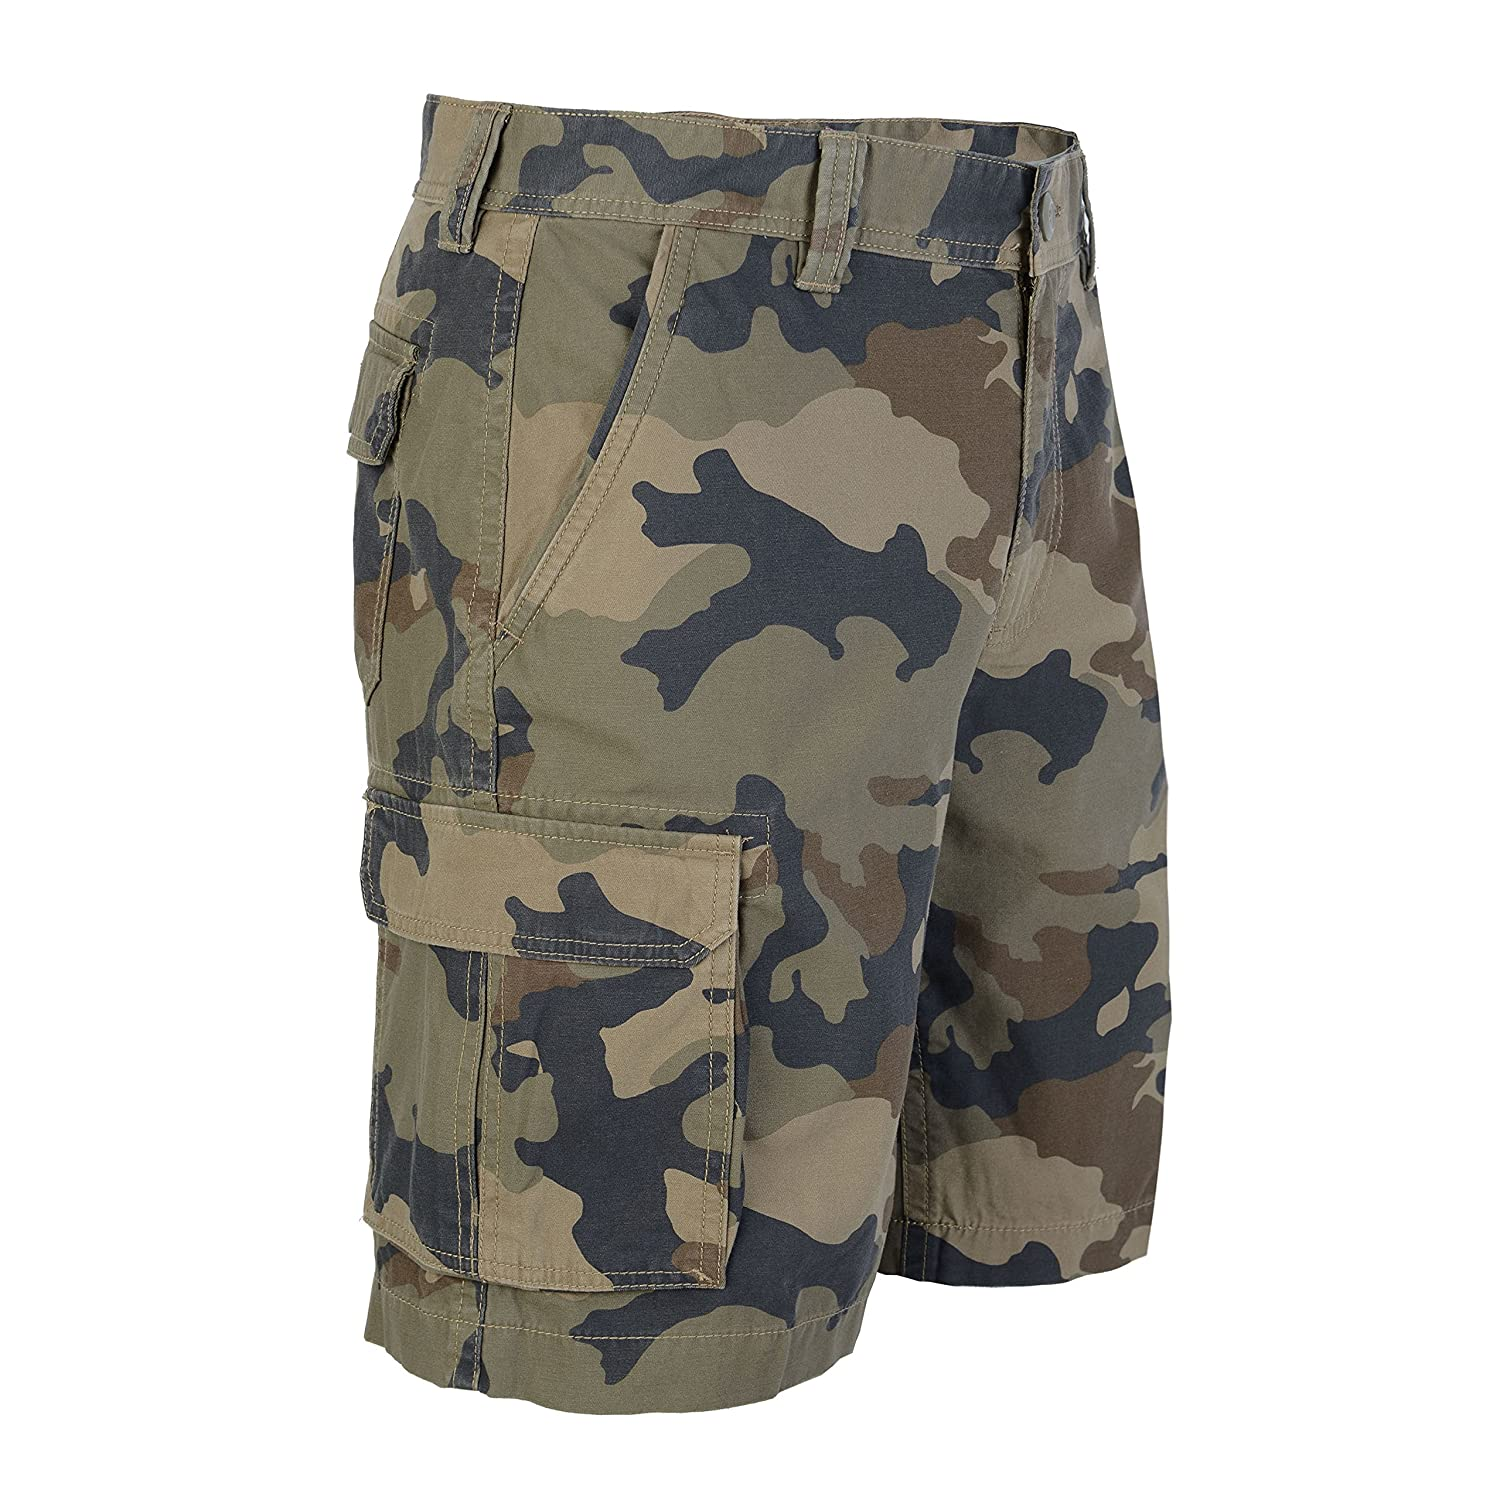 626bd7a990 WestAce Mens Camo Shorts Cargo Combat Army Half Pant Work Wear Camouflage  100% Cotton Chino Shorts: Amazon.co.uk: Clothing